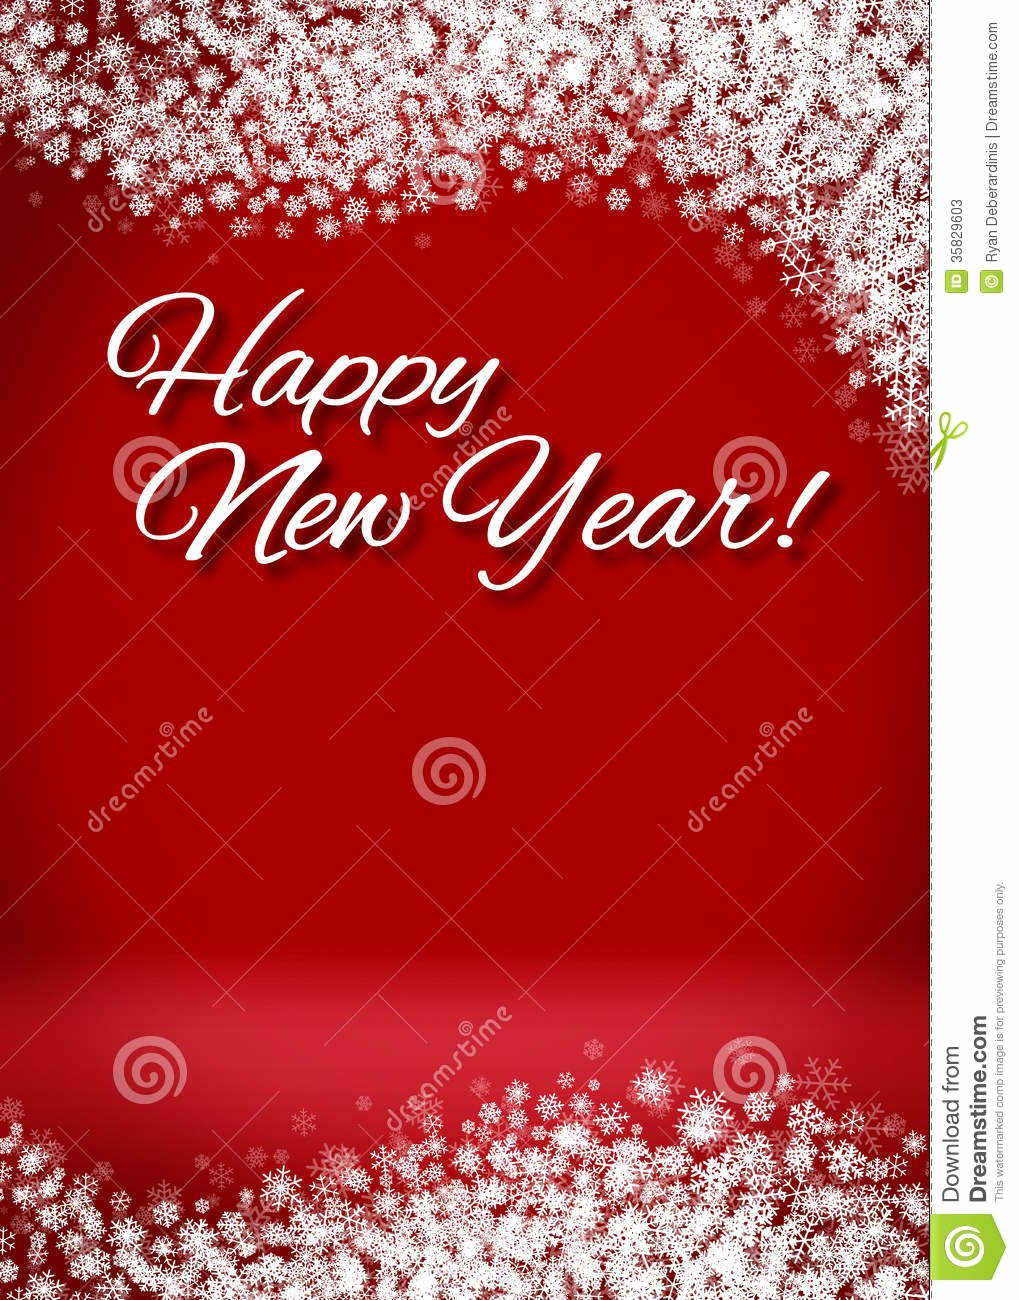 New Year Card Template Fresh Snowy Happy New Year 3d Card Background Stock S Image